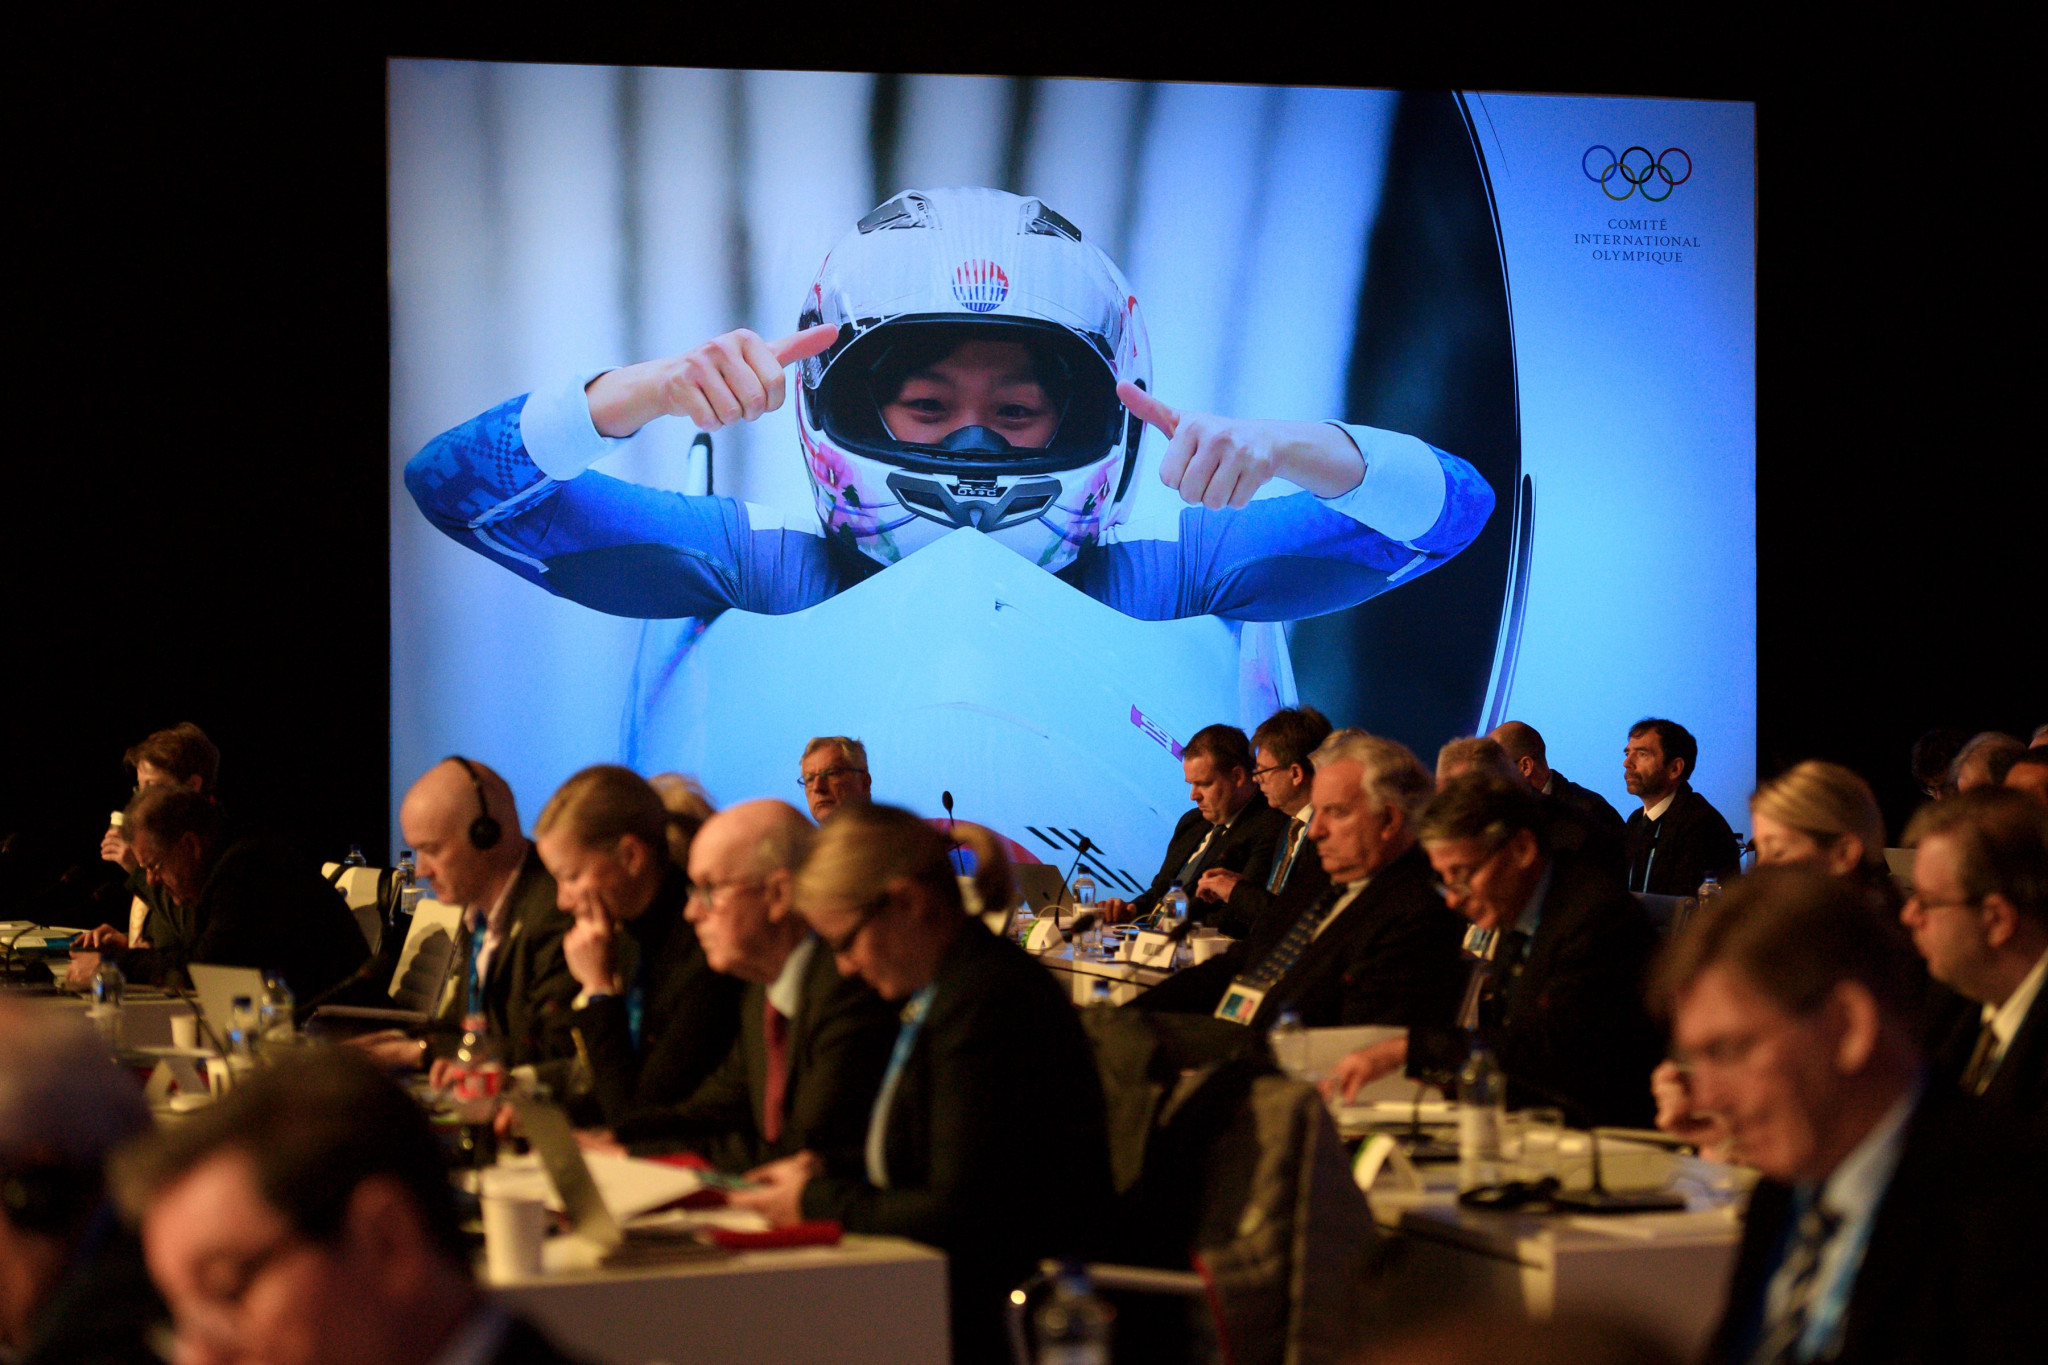 132nd International Olympic Committee Session: Day one